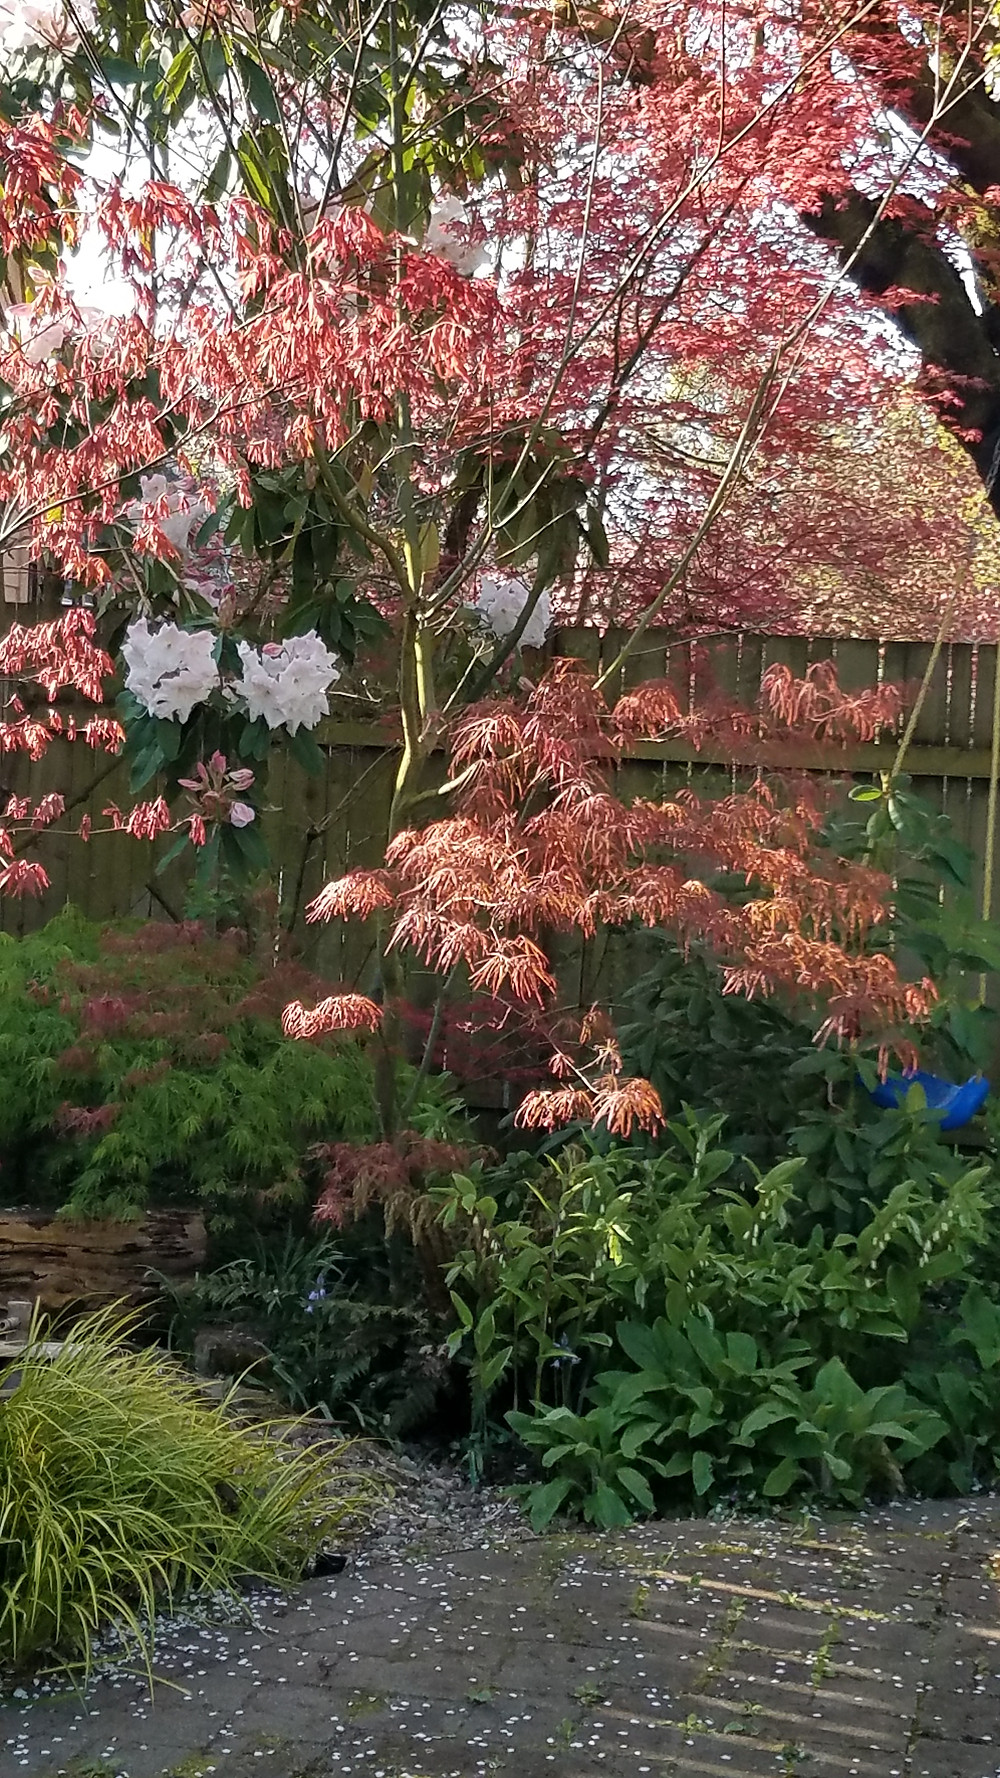 A very tall rhododendron with white flowers, and a red-leaved Japanese maple in the corner wher the plum once lived.